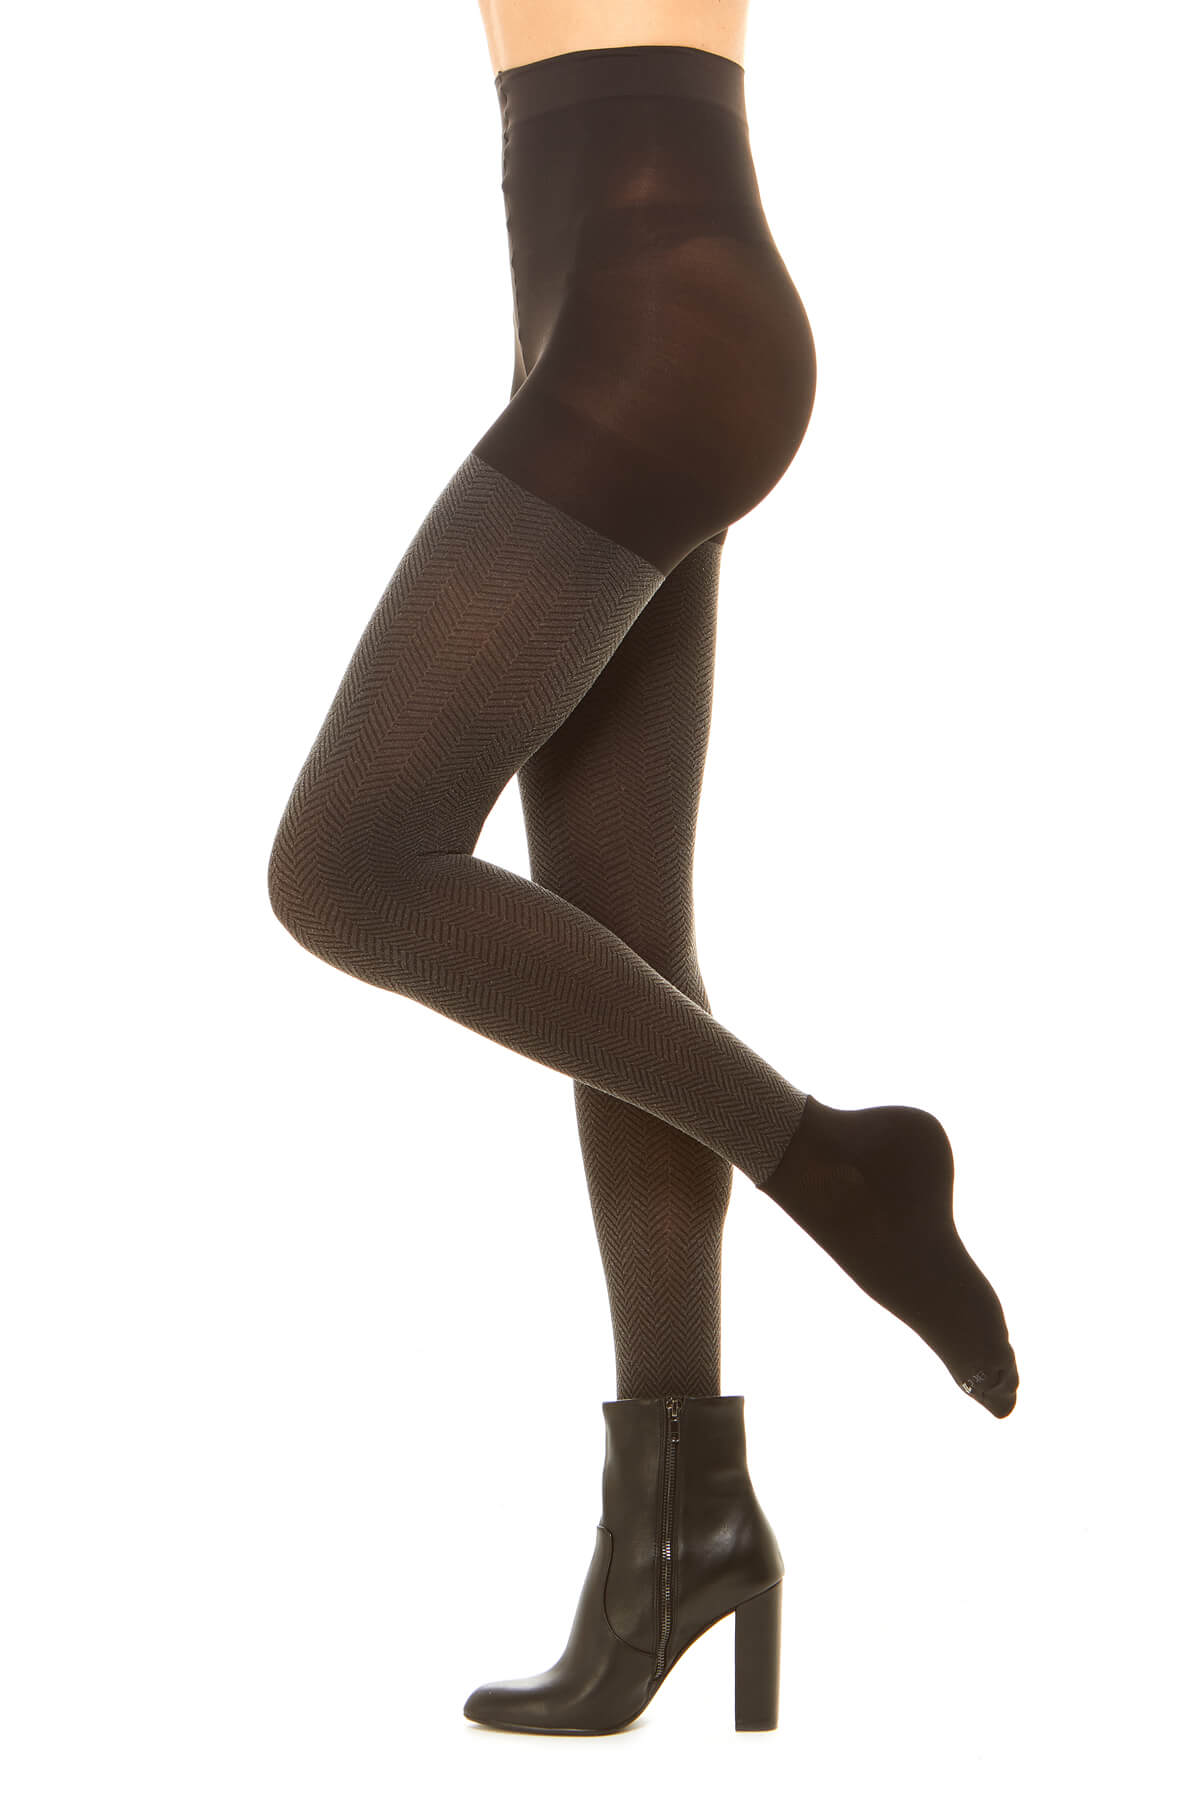 Premium semi opaque women's tights in a sheer rib pattern with attached performance athletic socks and tummy control waistband